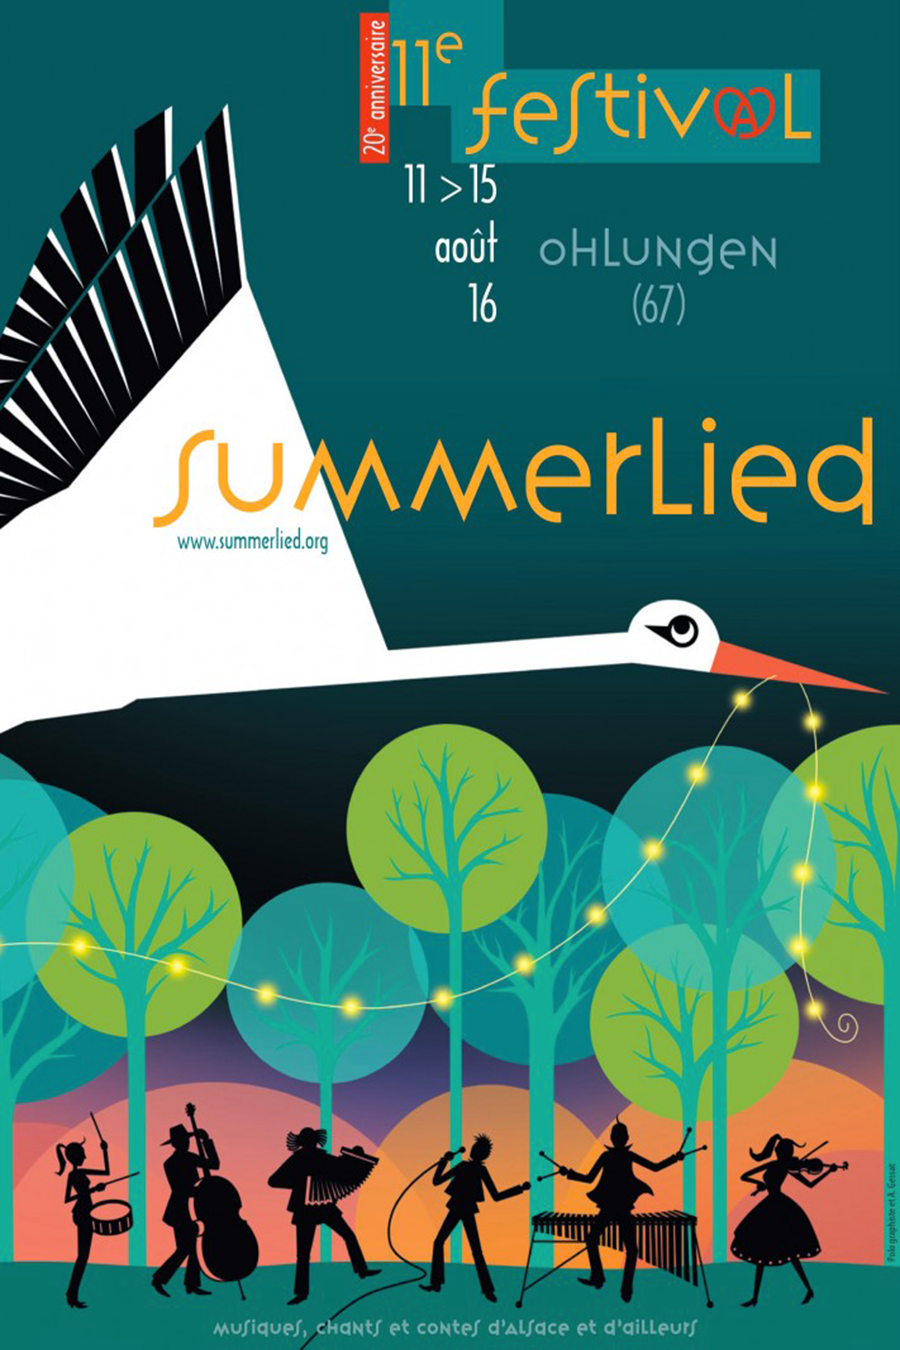 Summerlied